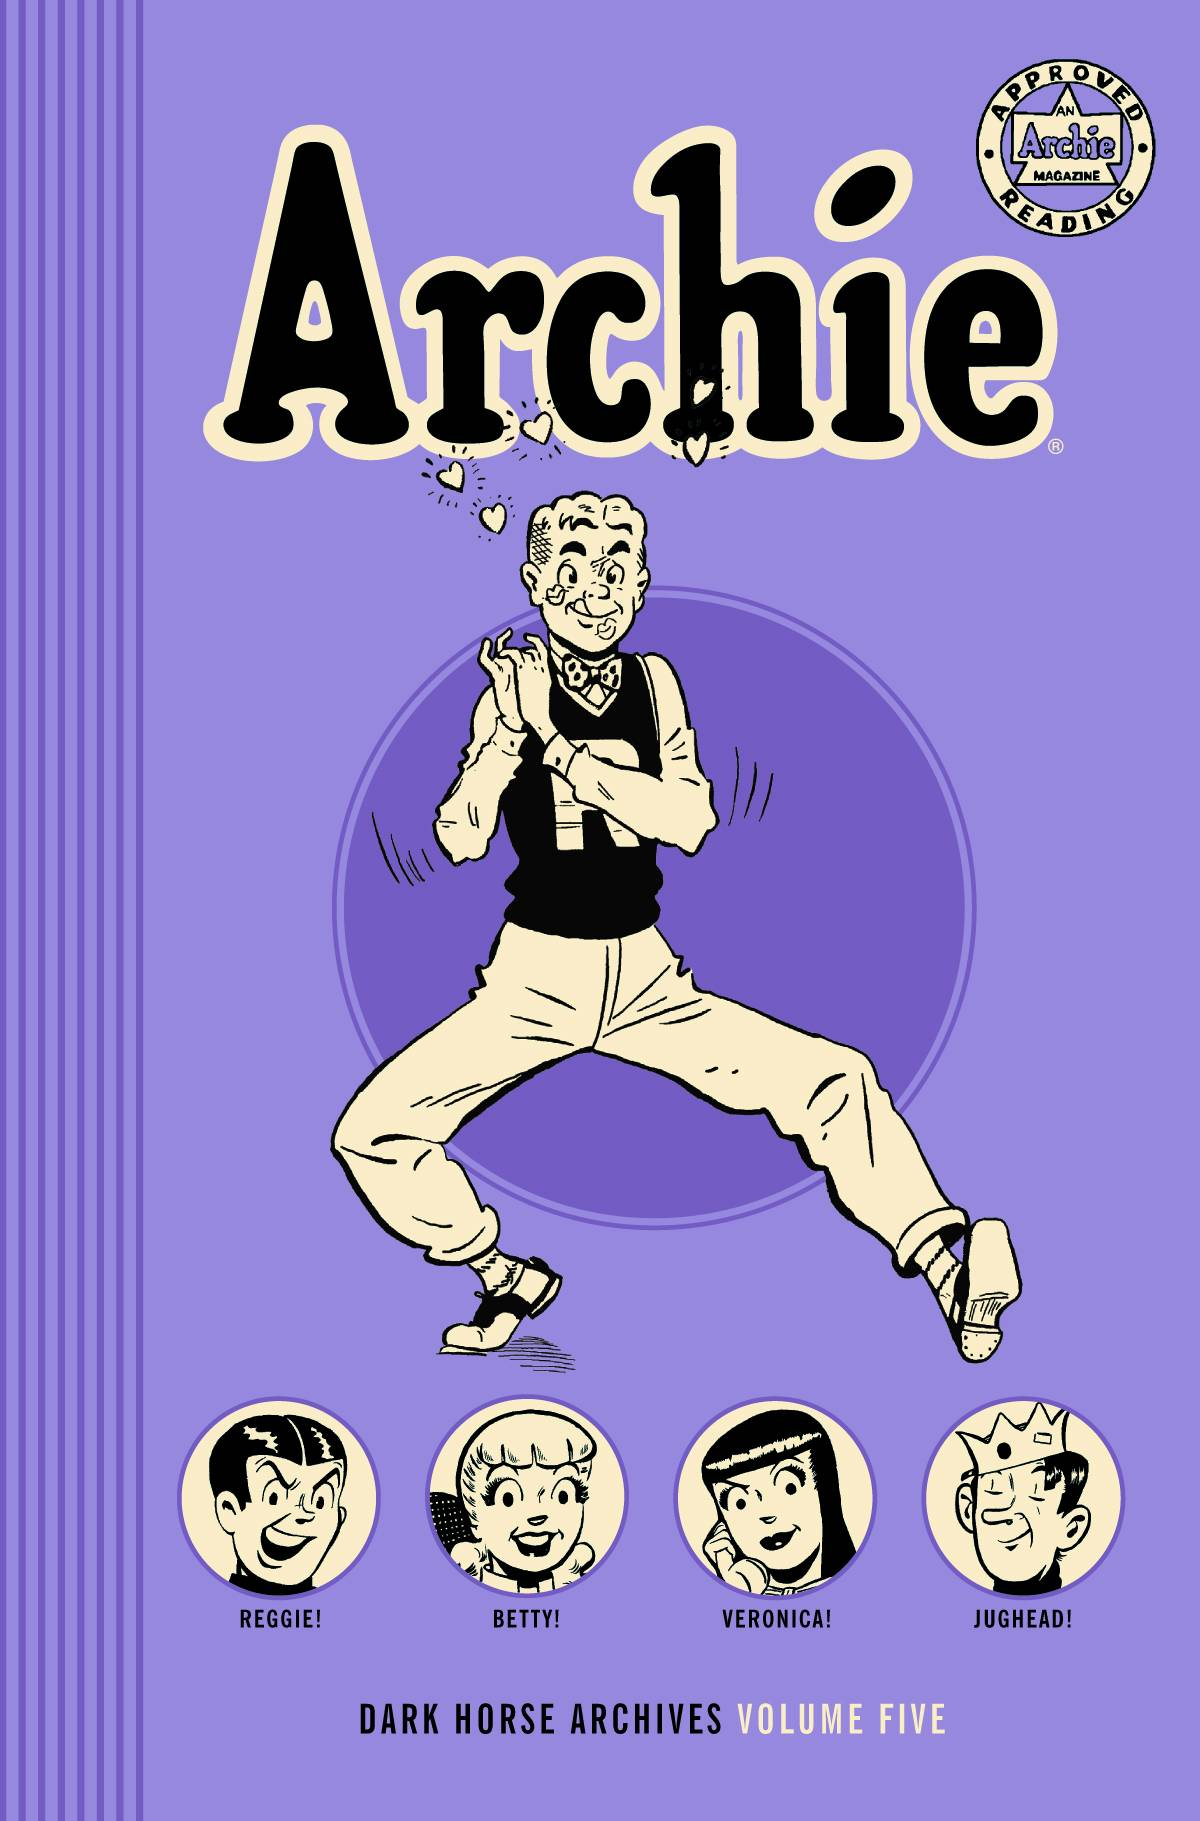 Archie's Archives Vol 5 Hardcover